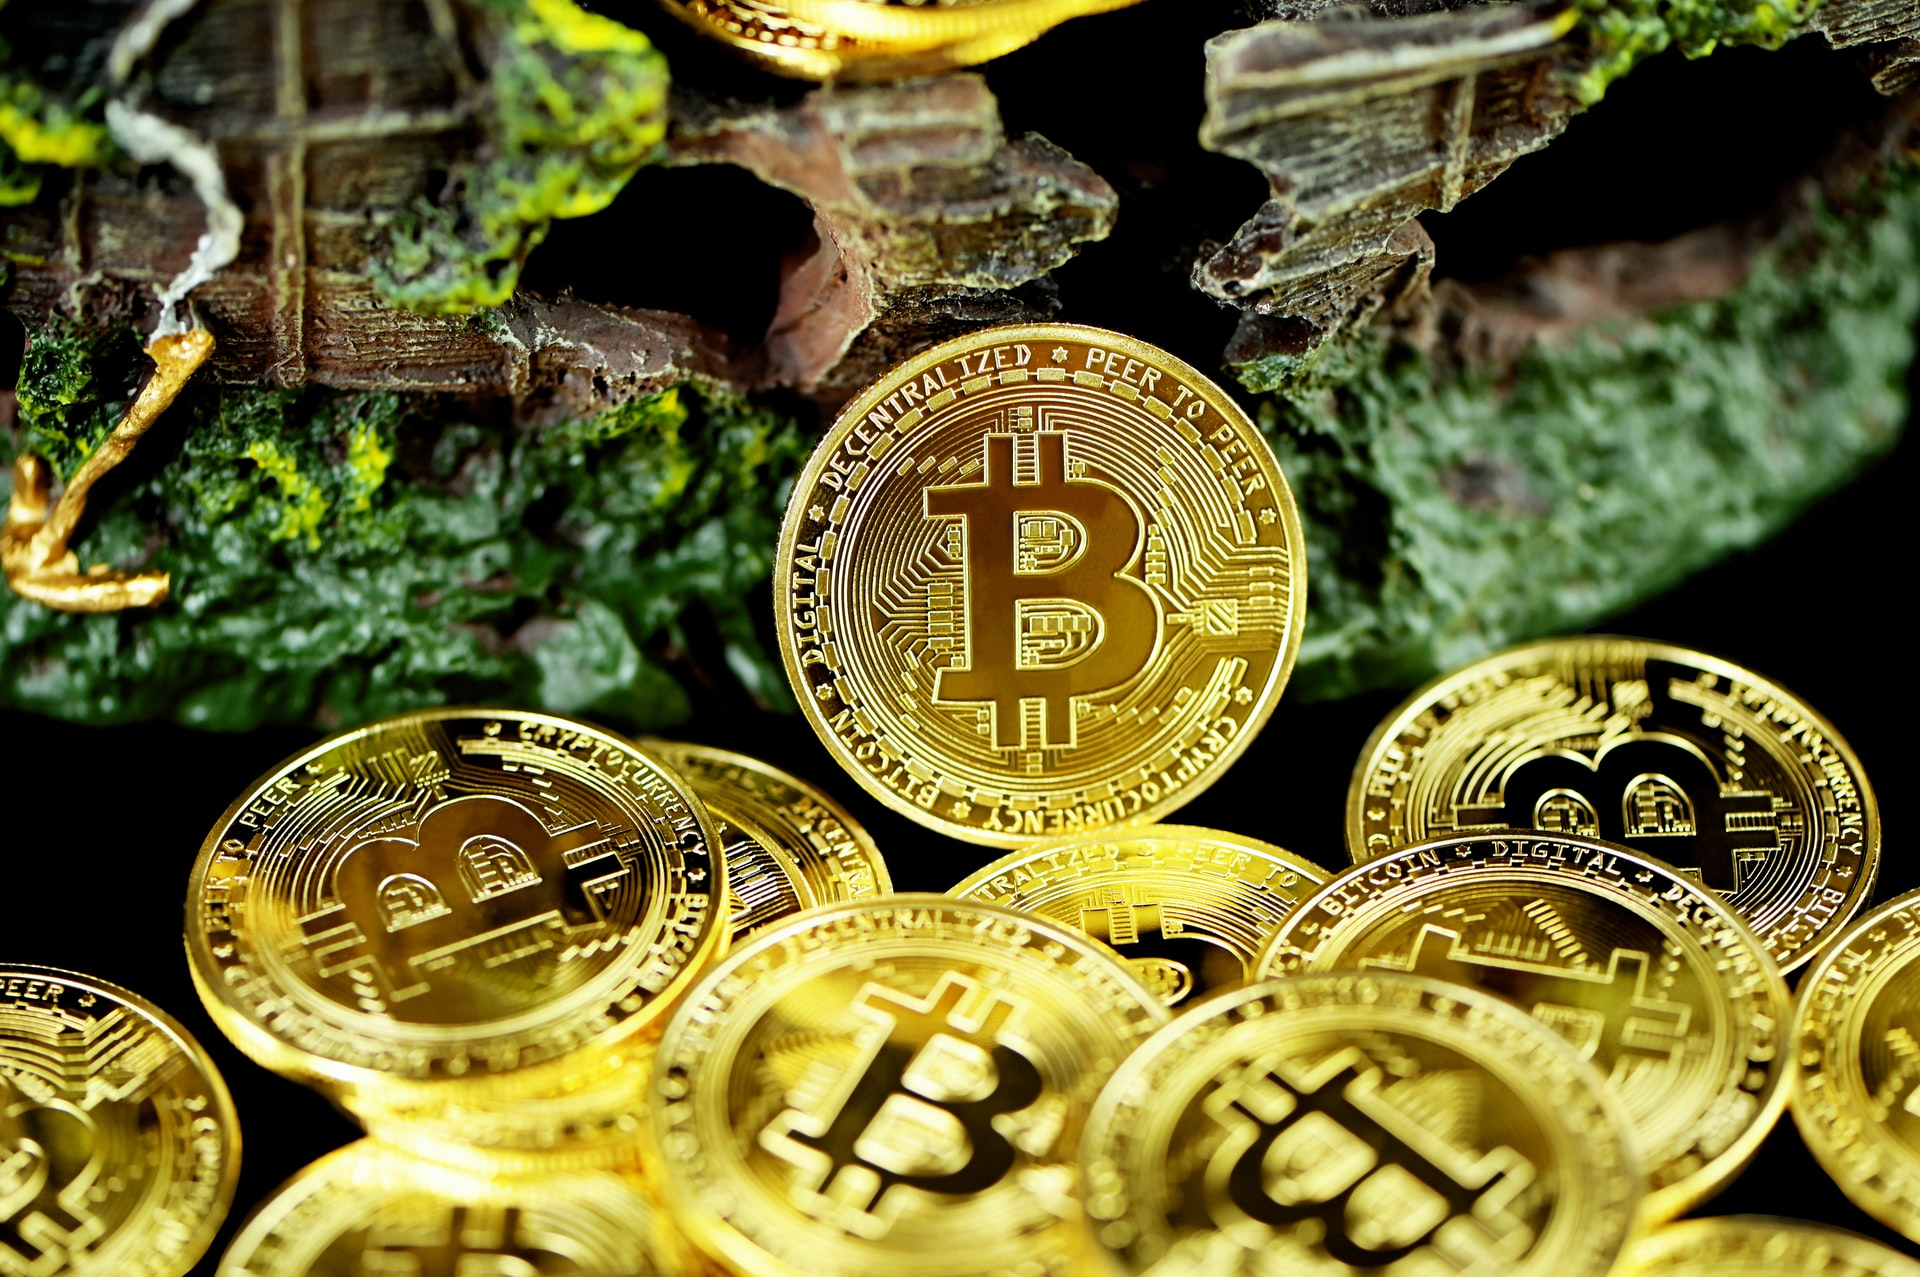 Bitcoin Goes Even Greener: Utility-Scale Renewables, Nuclear Power, Eliminating Natural Gas Waste